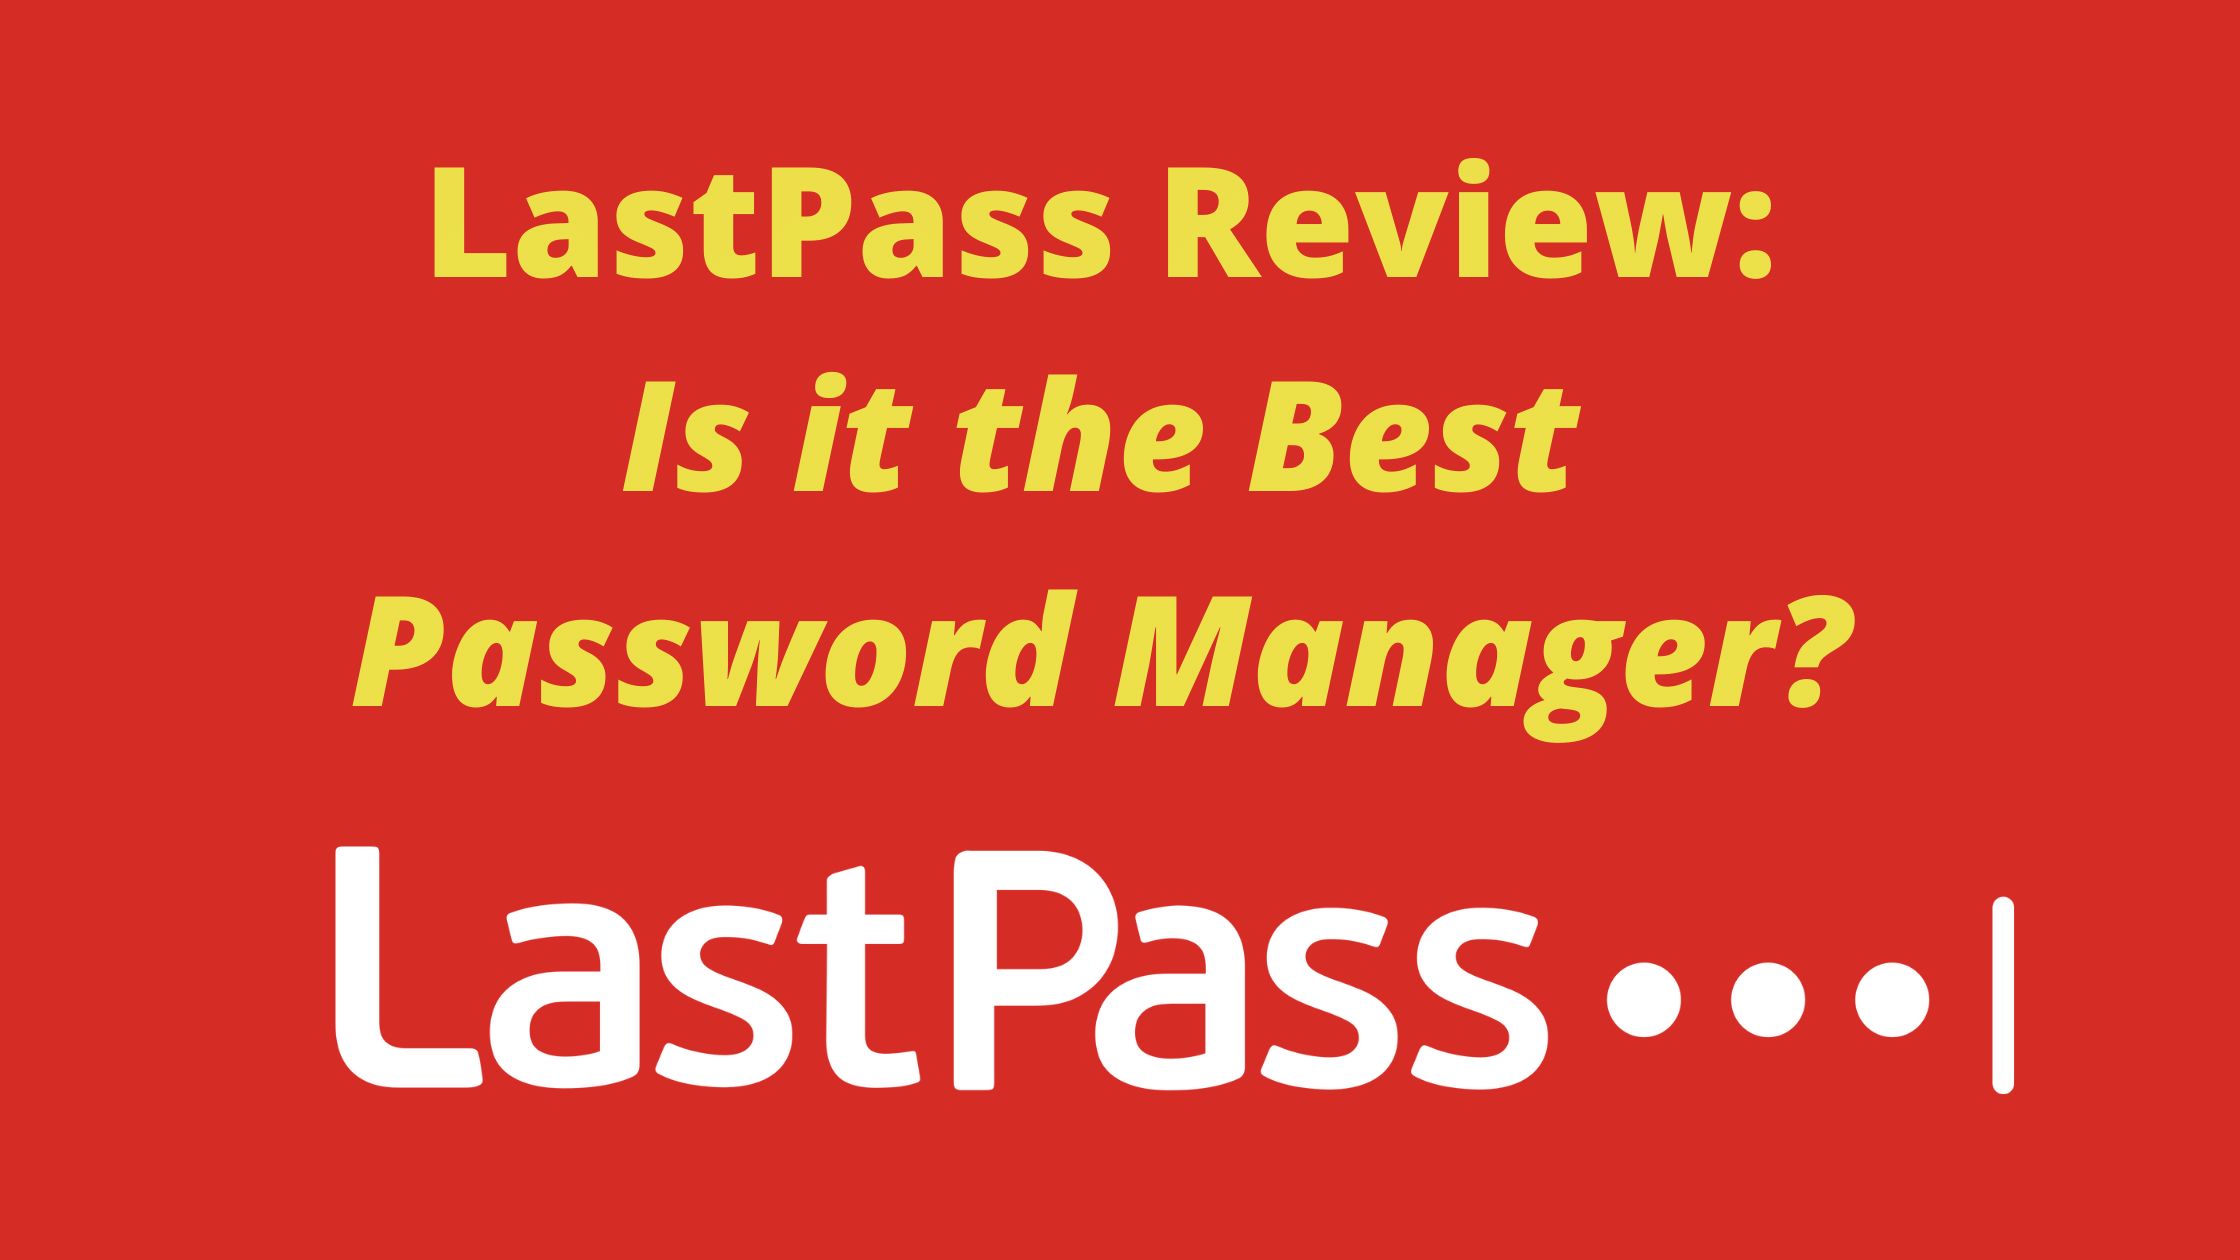 LastPass Review: Is it the Best Password Manager in 2021?